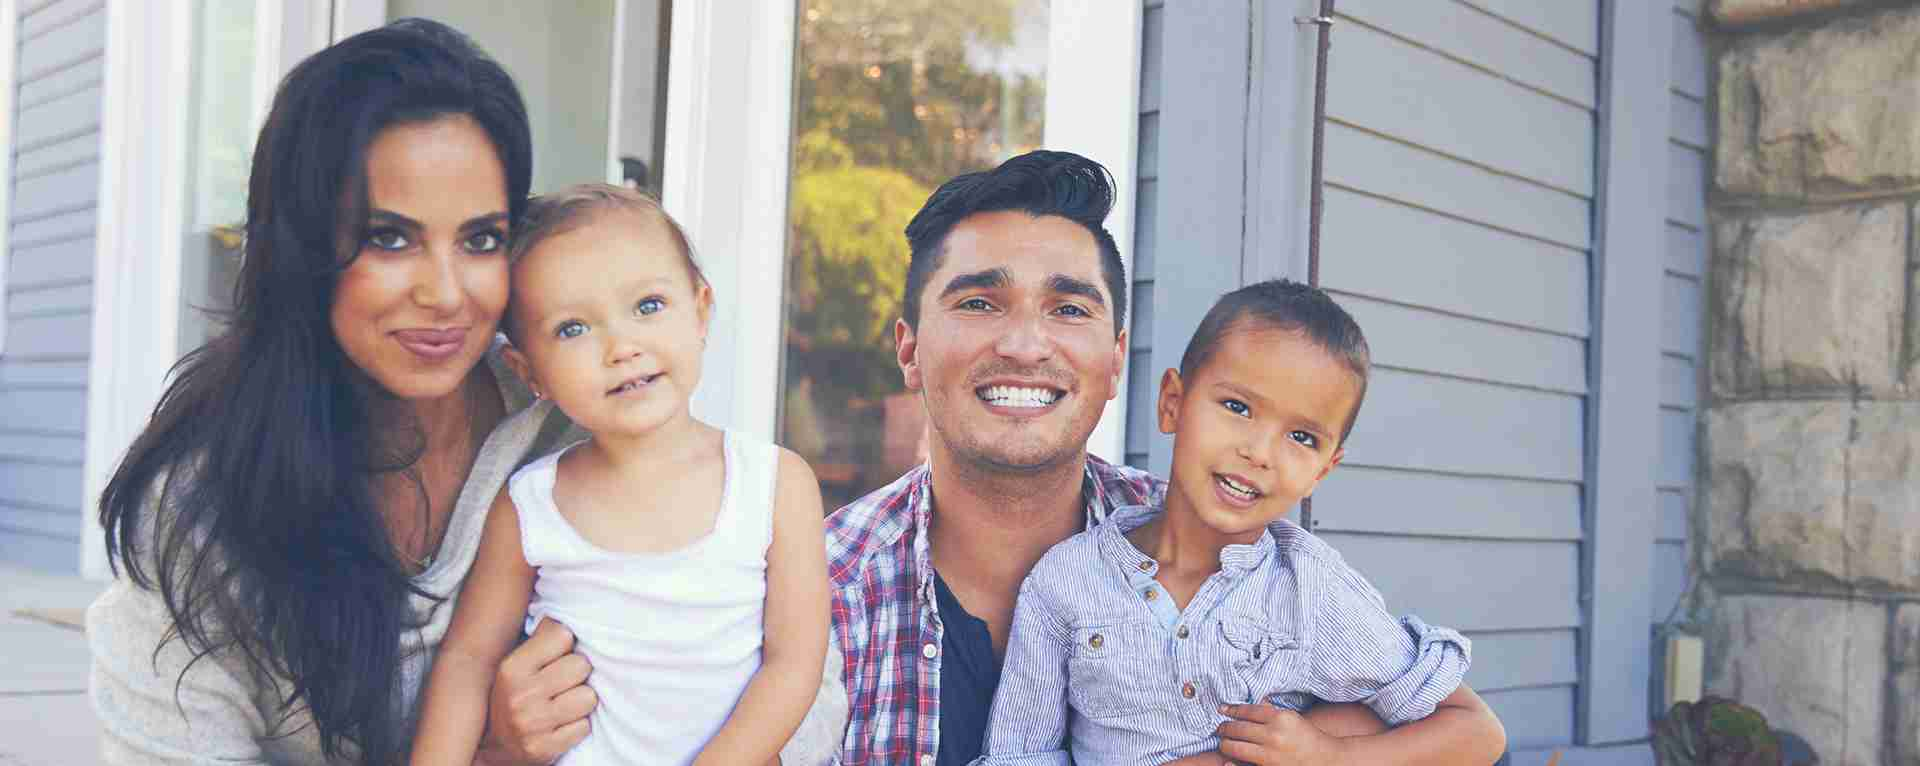 Two young foster parents with their little boy and girl